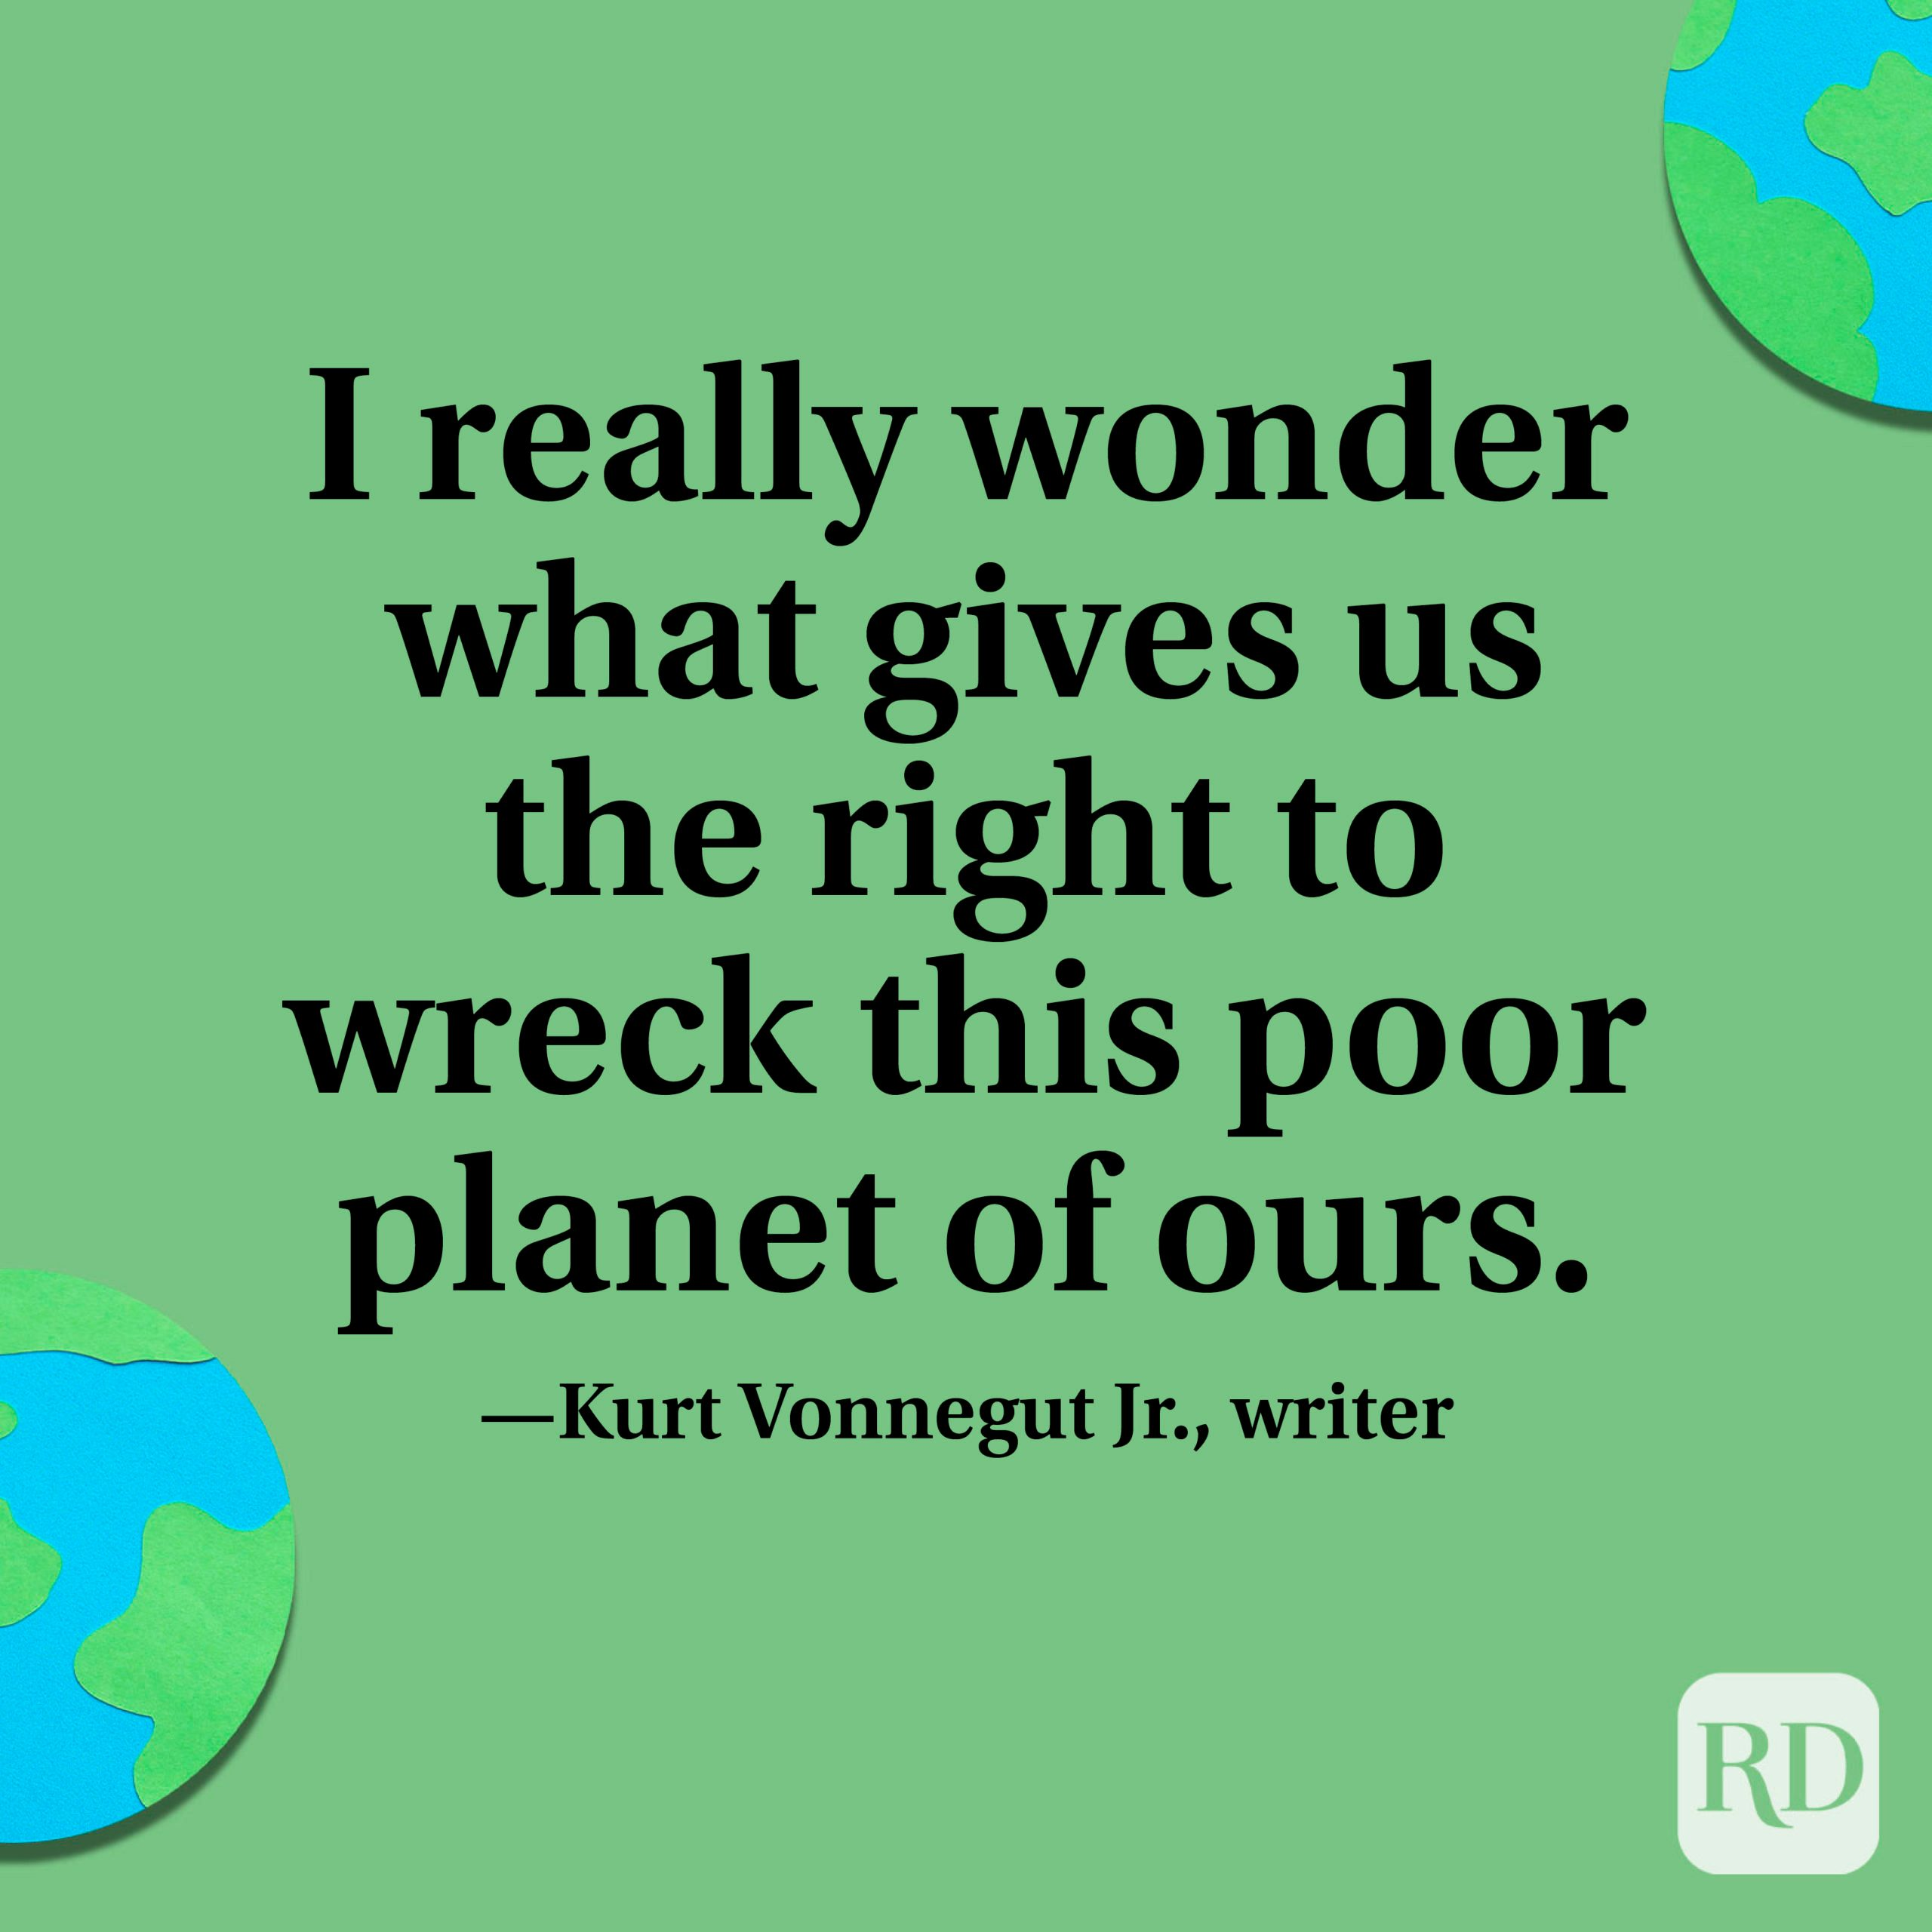 """""""I really wonder what gives us the right to wreck this poor planet of ours."""" —Kurt Vonnegut Jr., writer"""